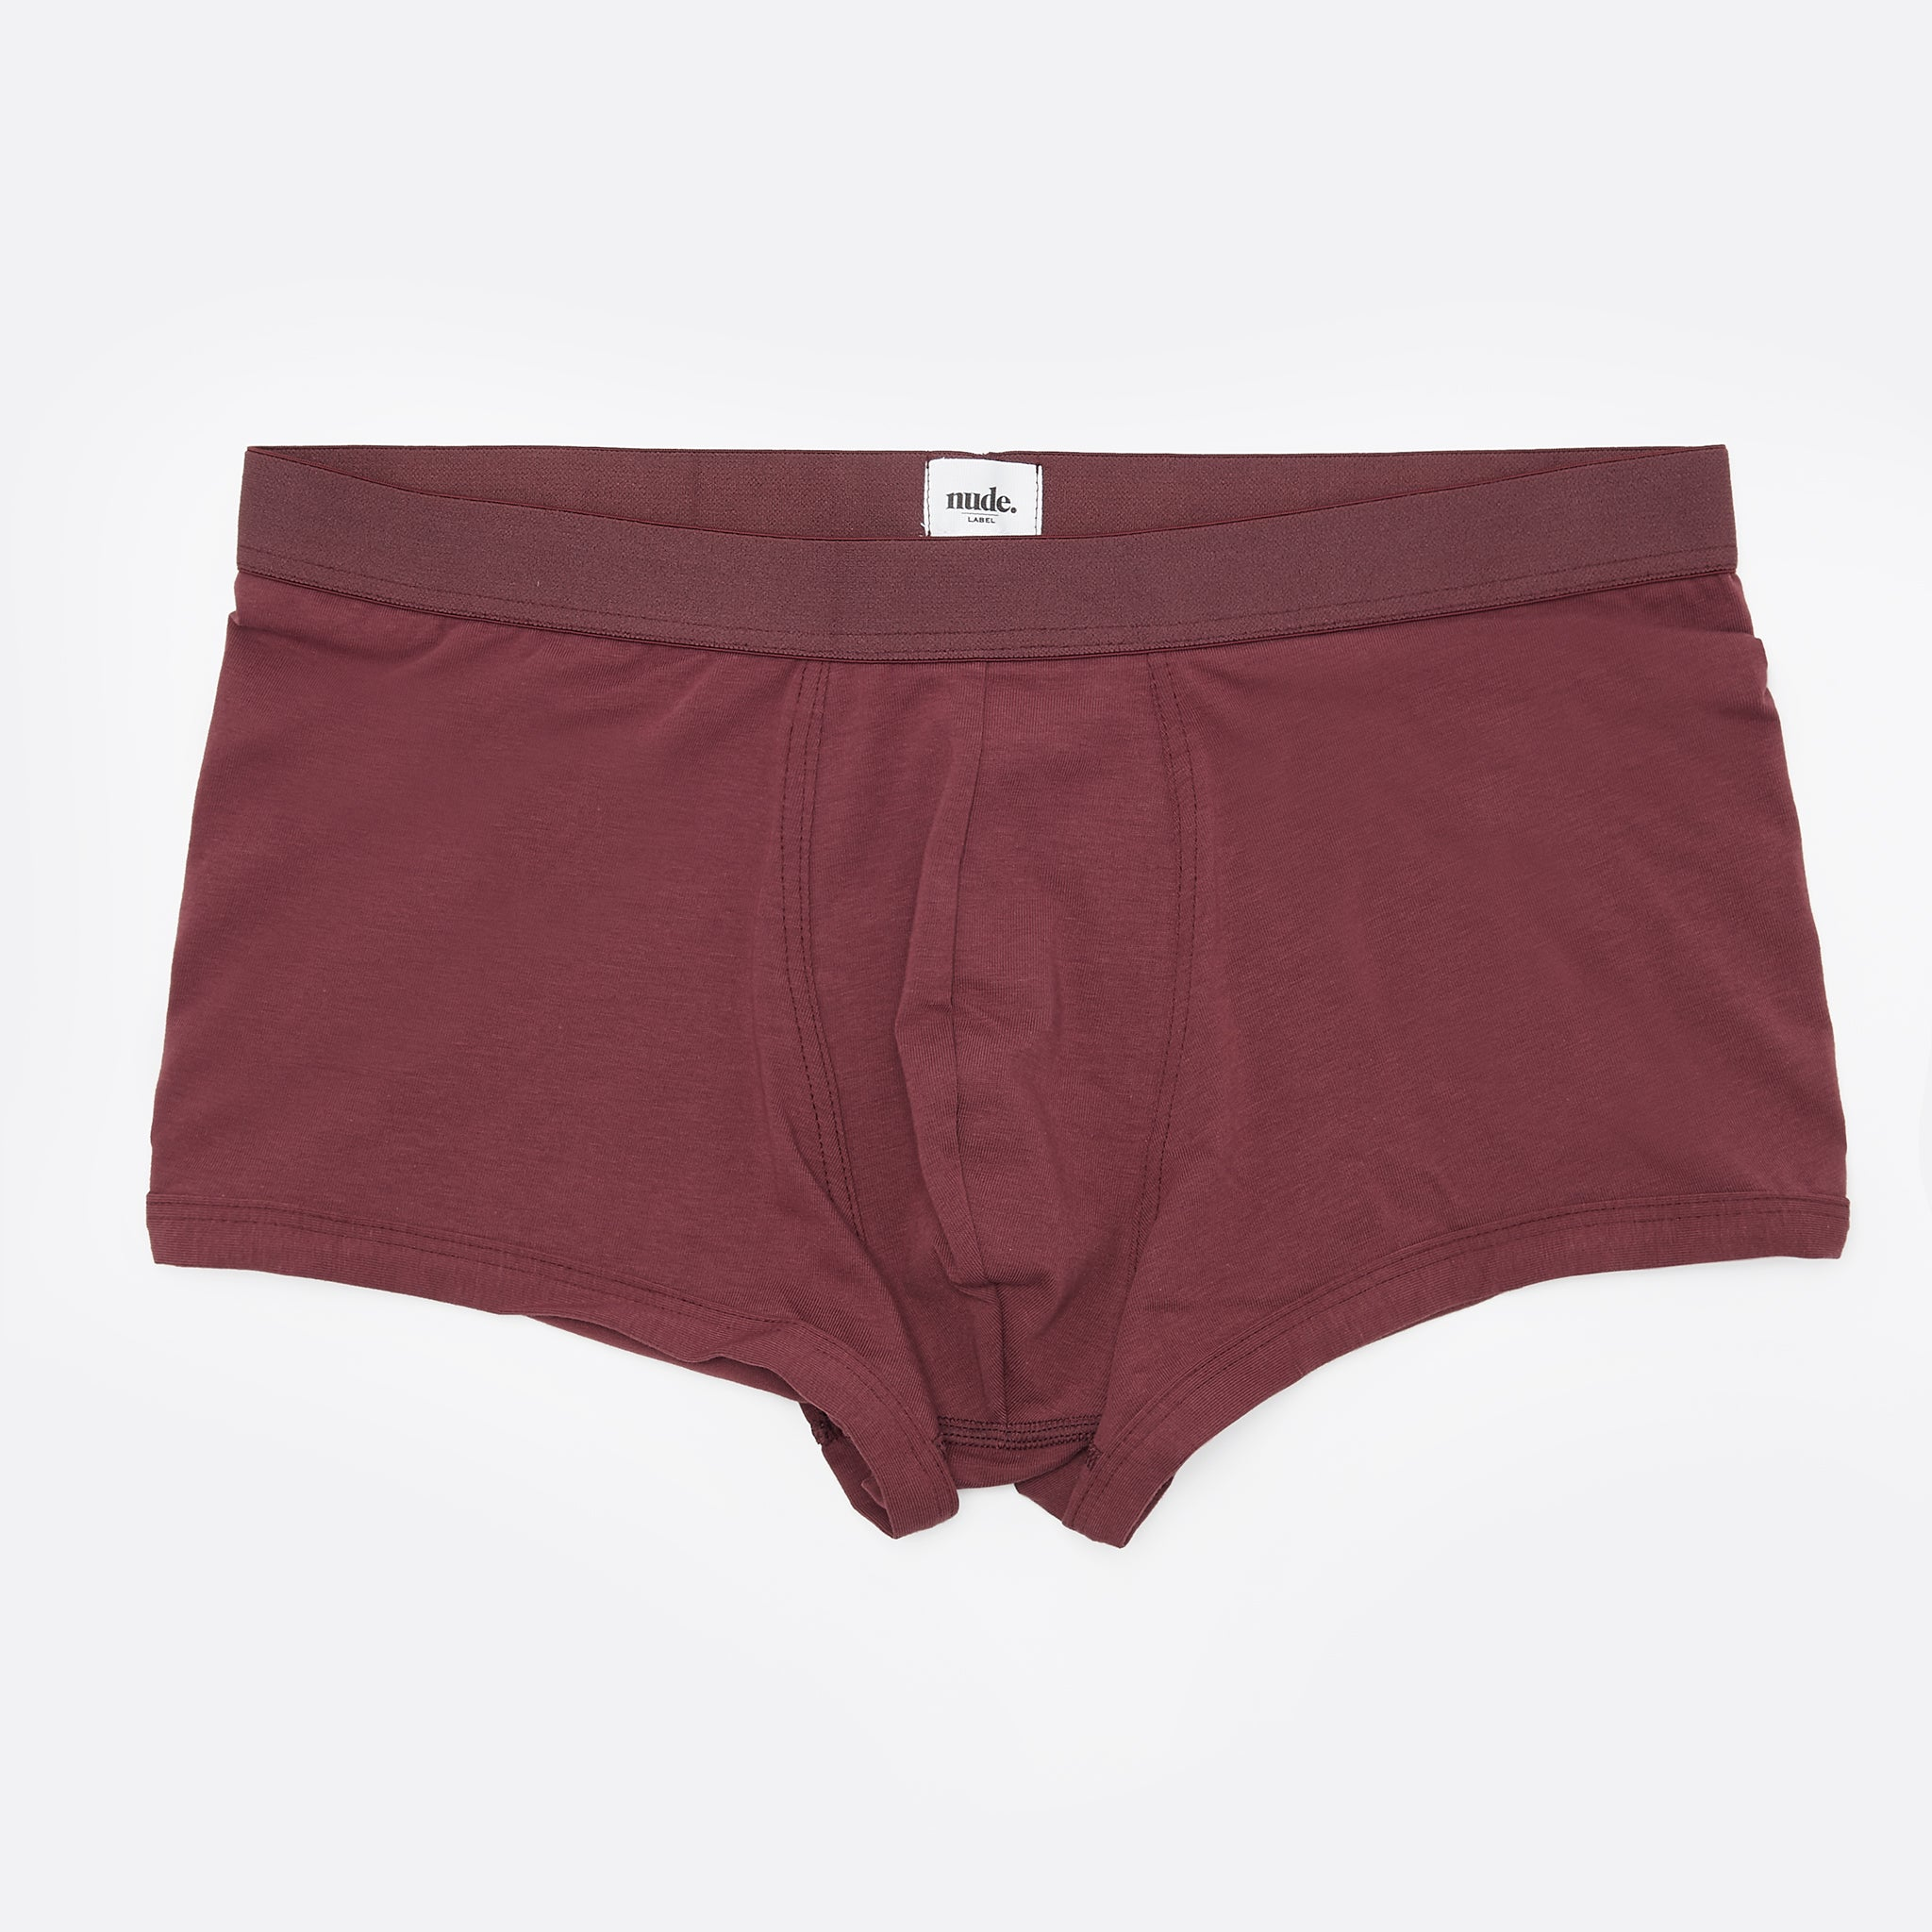 The Nude Label Trunk in Mauve